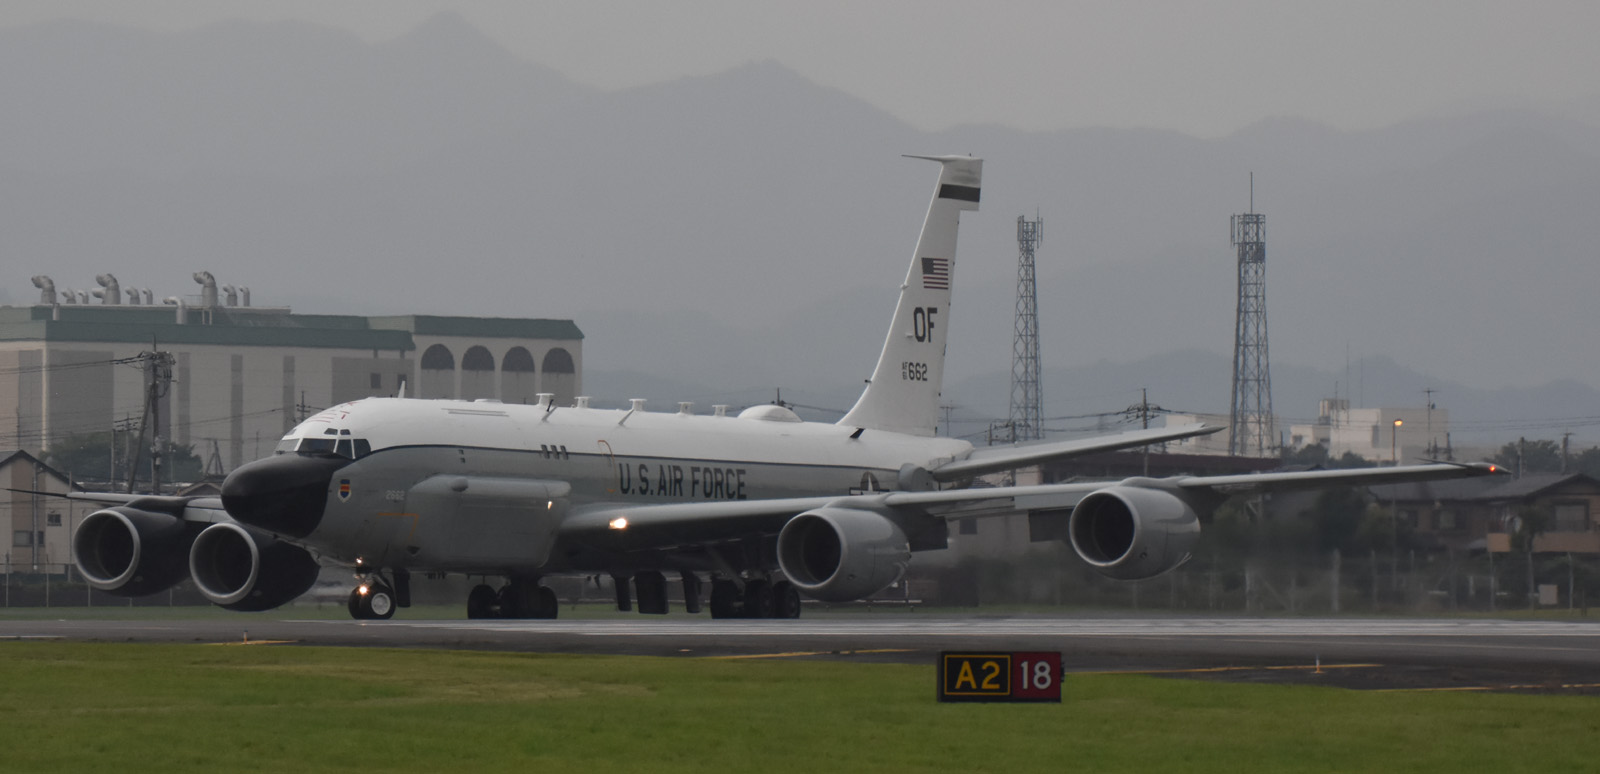 Rc135s170704g637